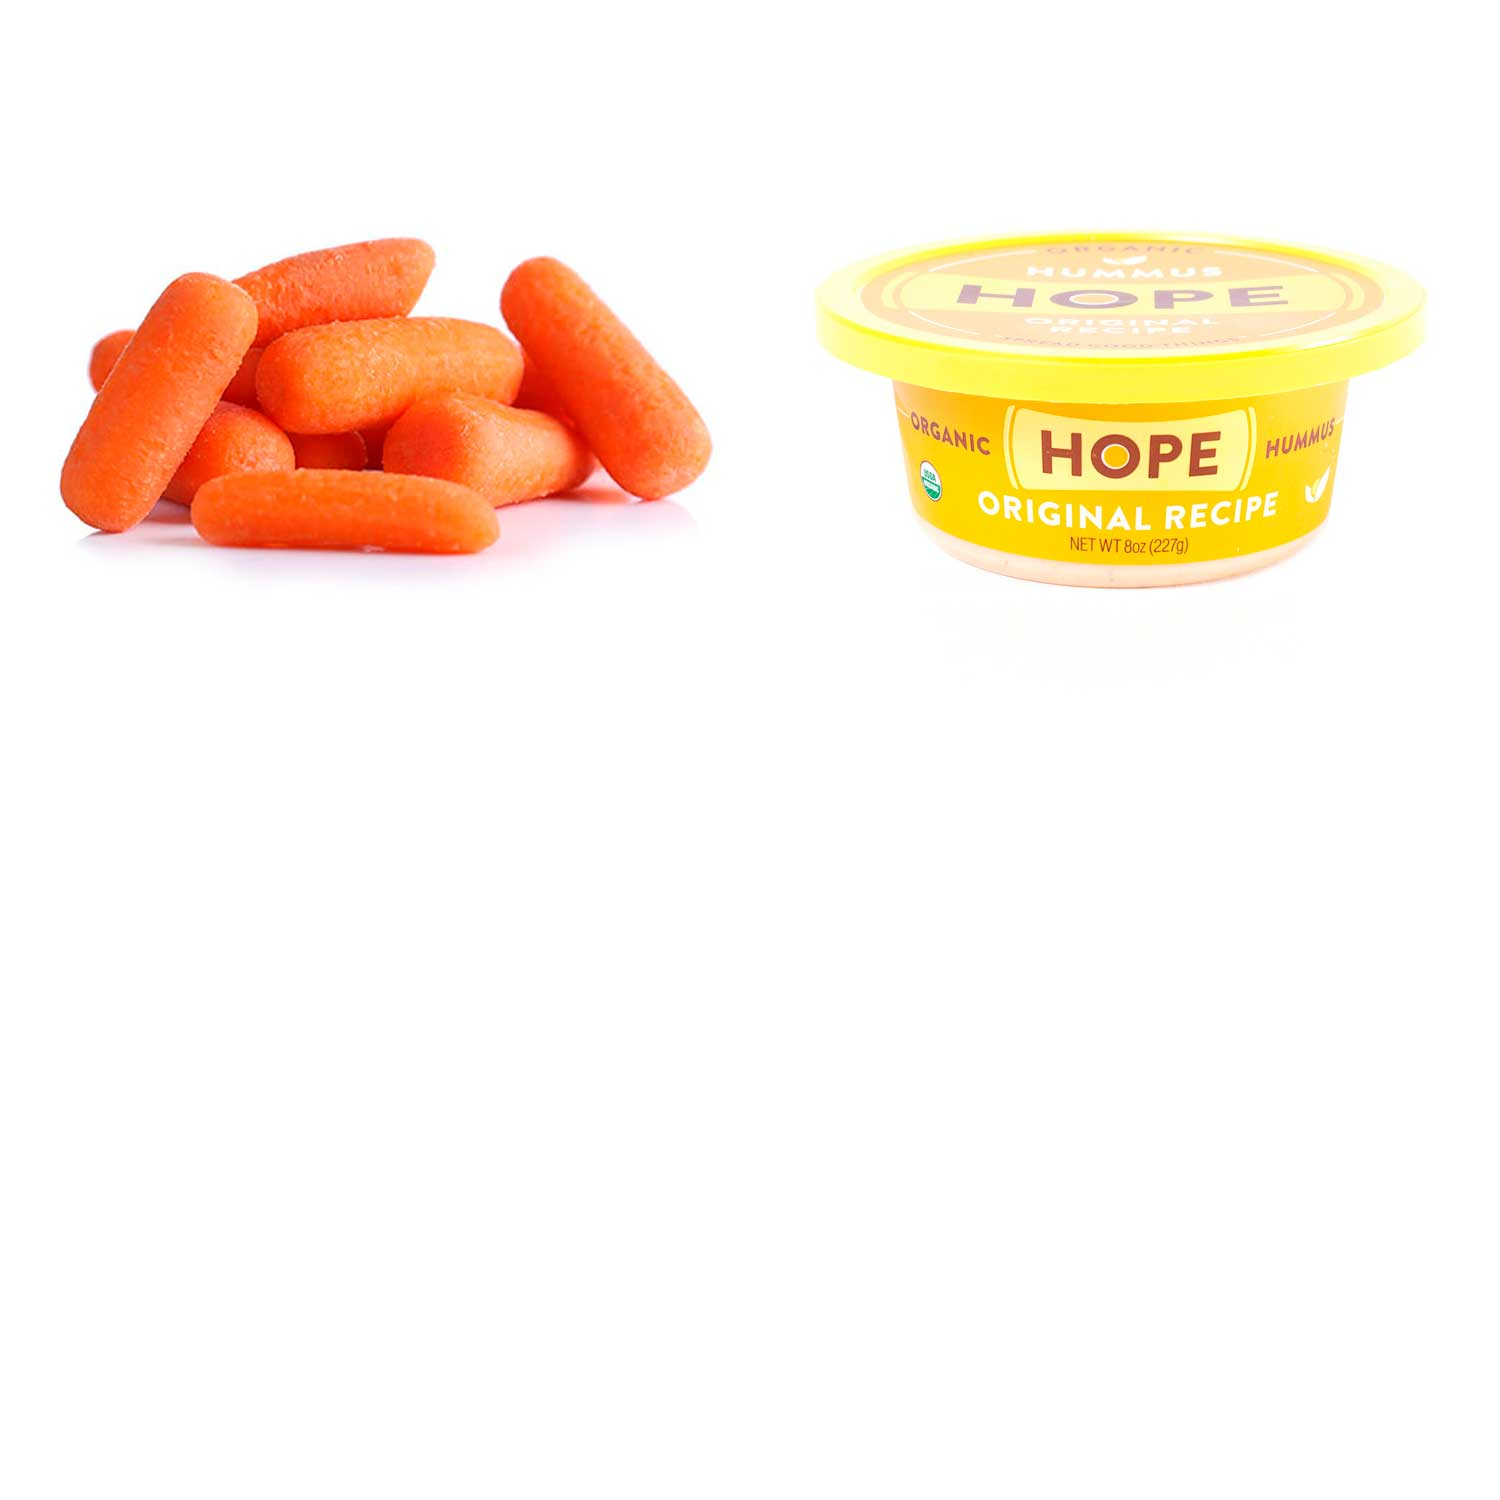 Baby Carrots and Hope Hummus (bundle)